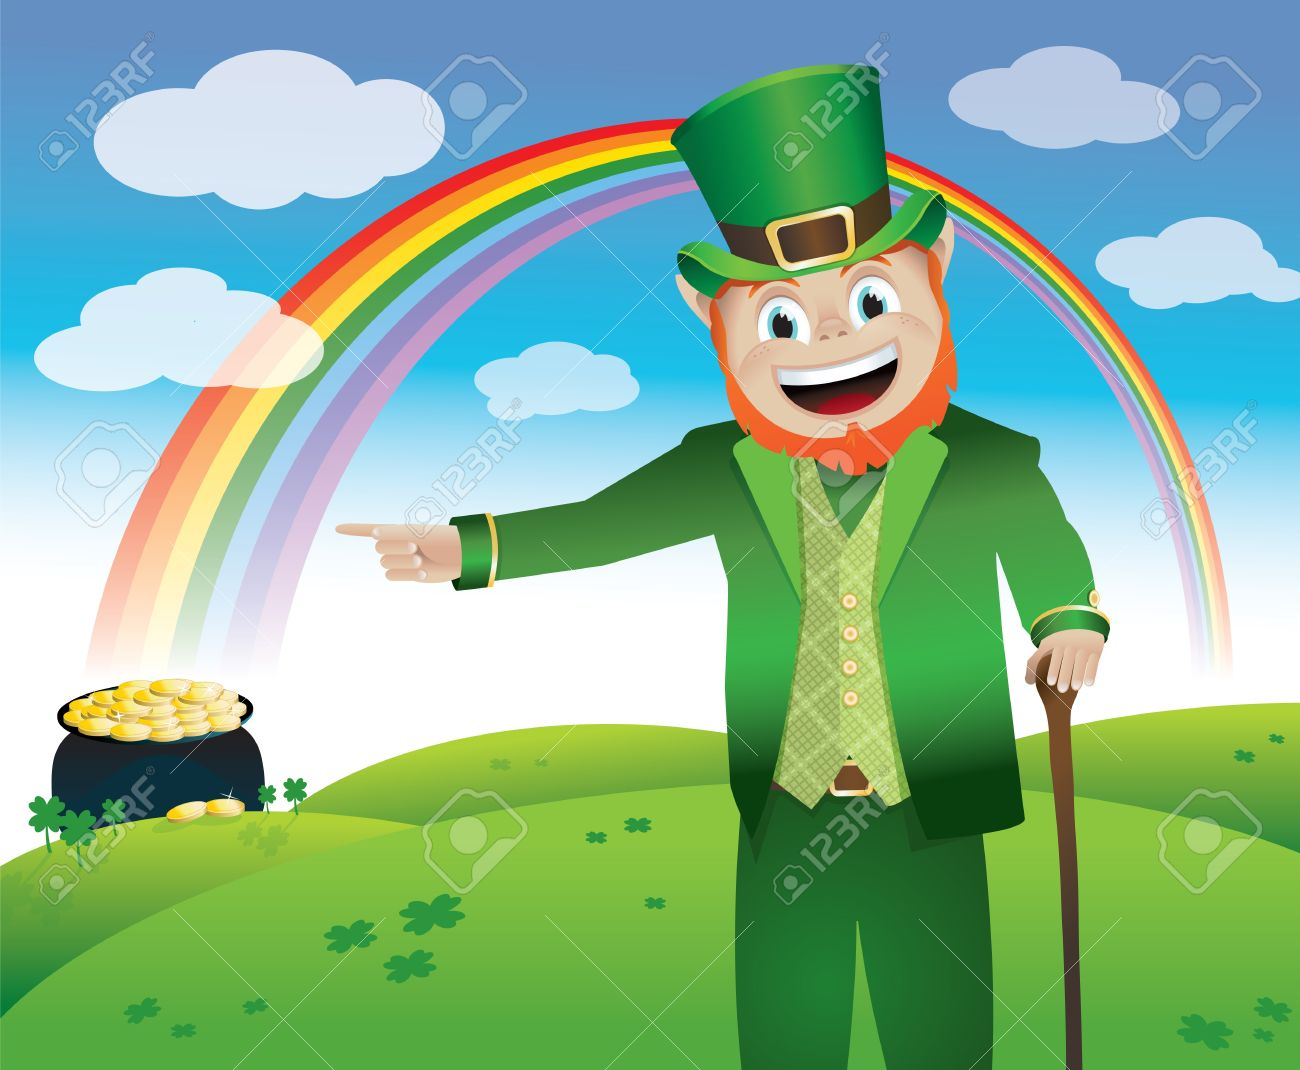 Uncategorized Leprechauns And Rainbows a leprechaun leading you to his pot of gold at the end rainbow stock